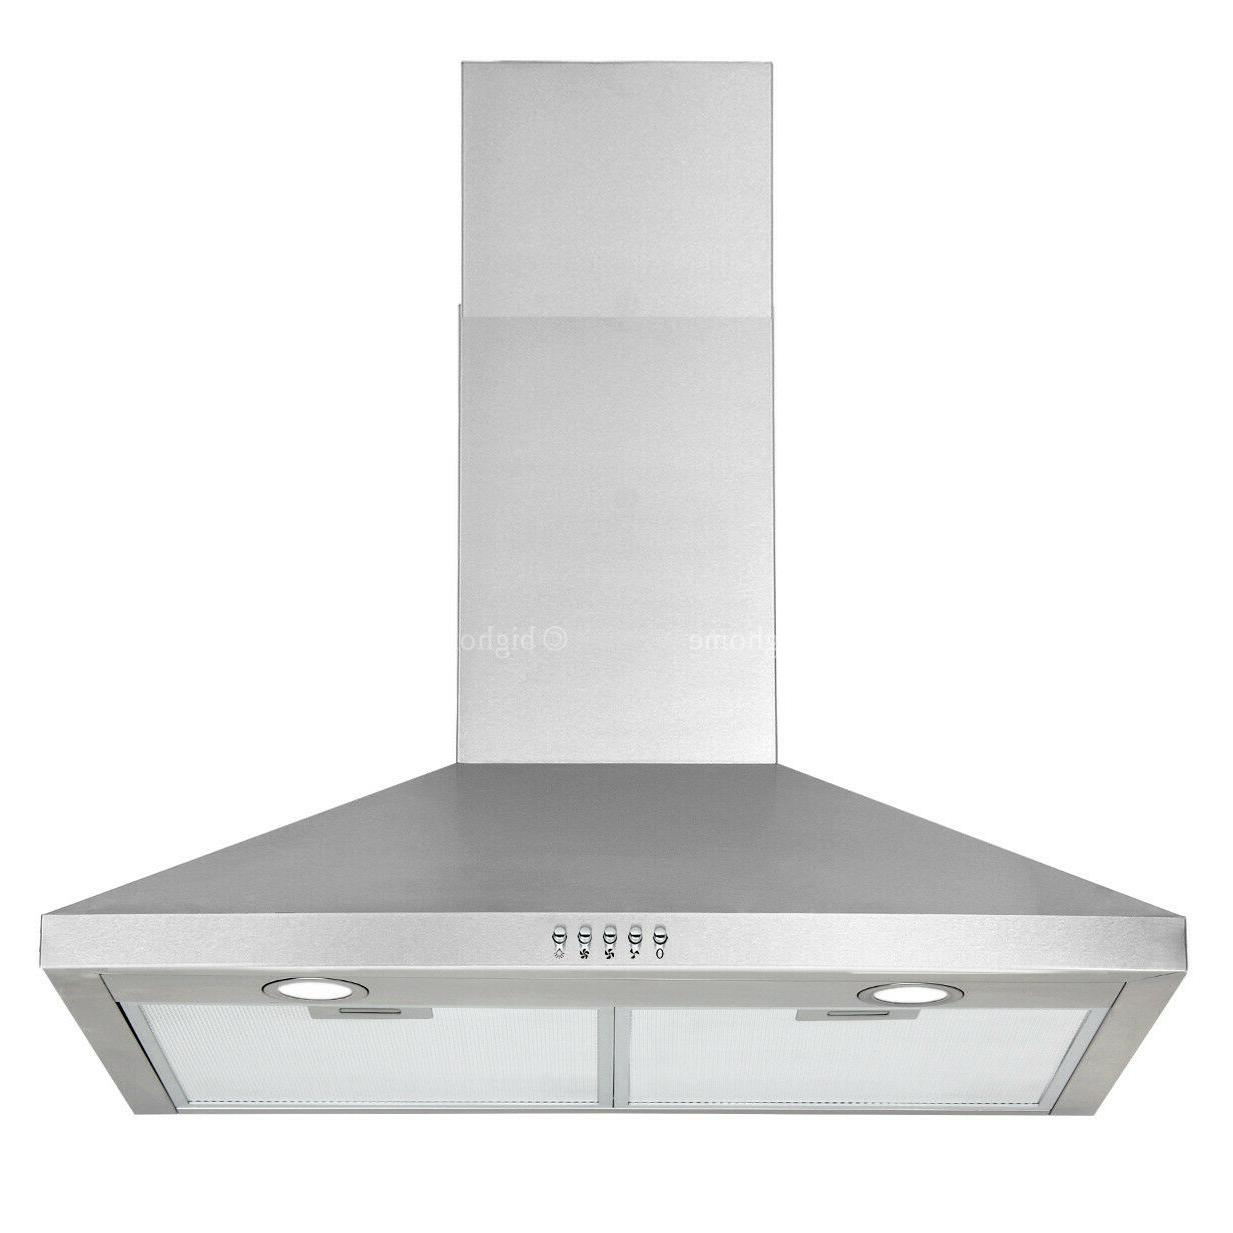 30 Inch Wall Kitchen LED